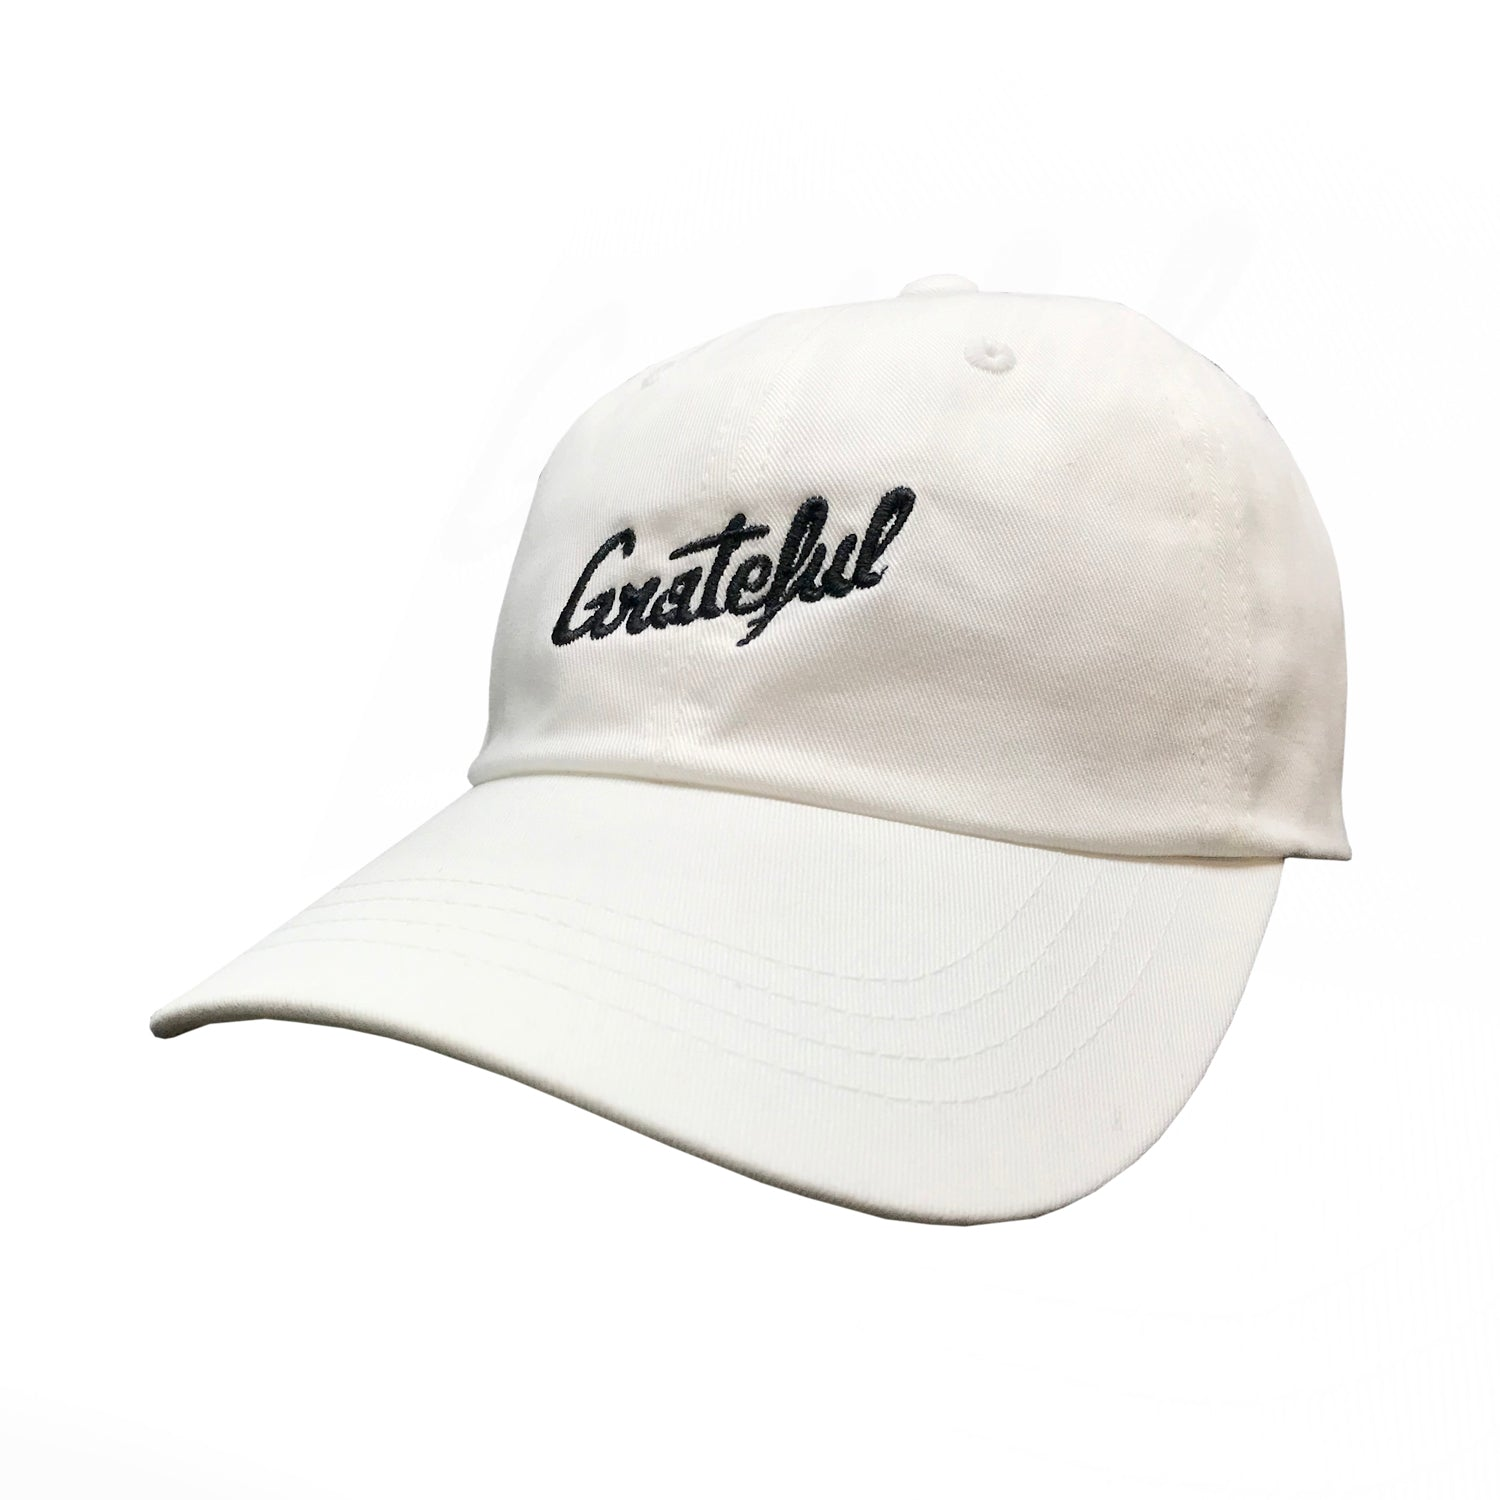 Script Flow Dad Hat  - White/Black